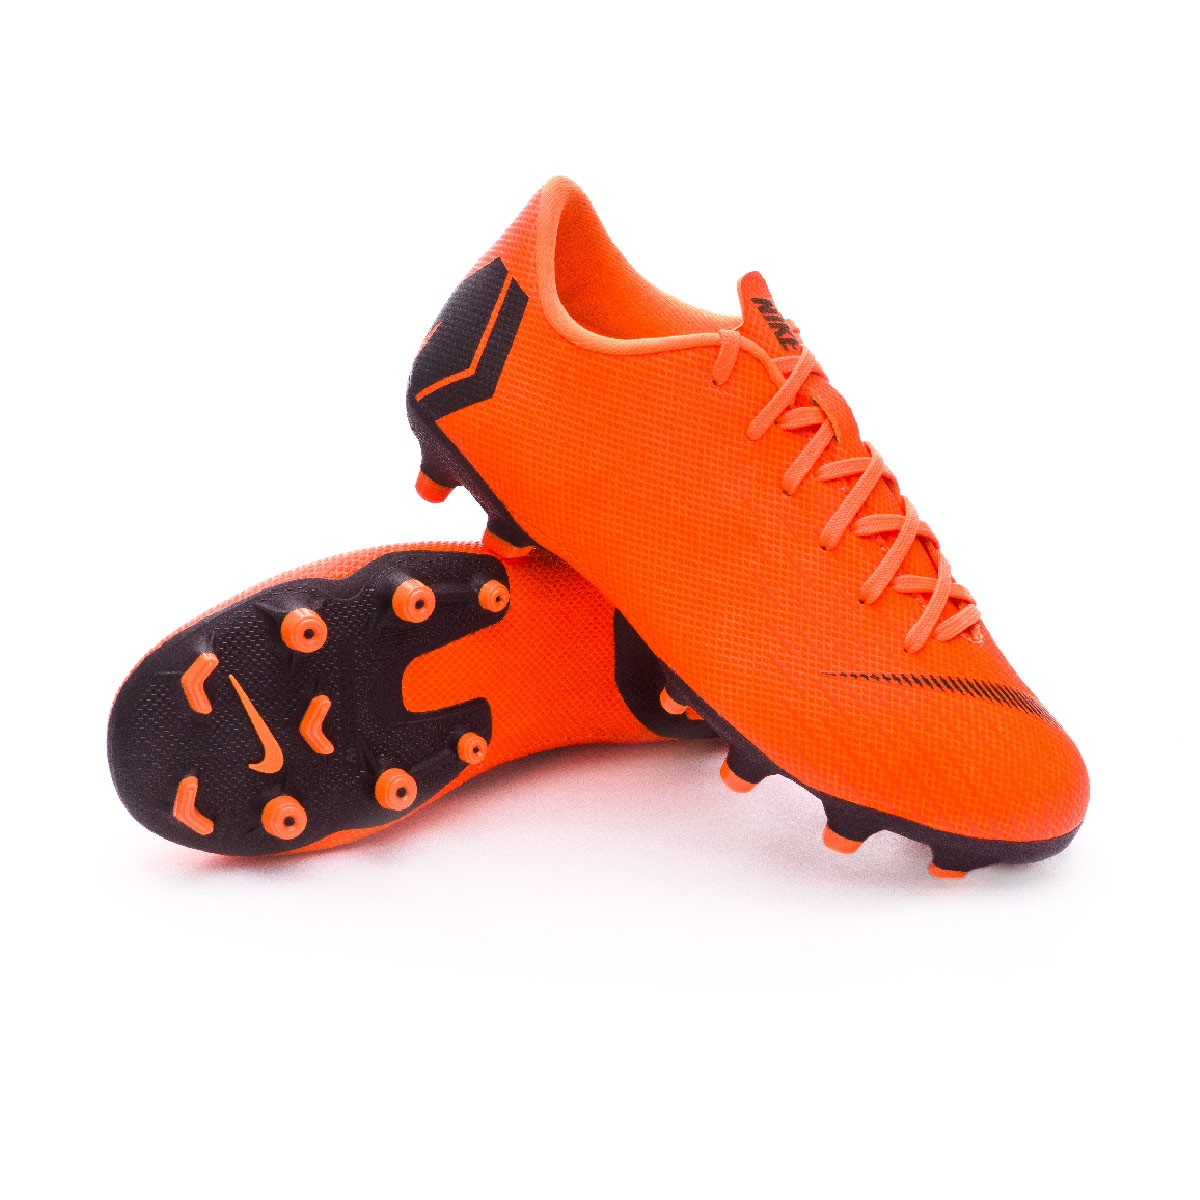 reputable site 2939a dab80 Nike Kids Mercurial Vapor XII Academy GS MG Boot